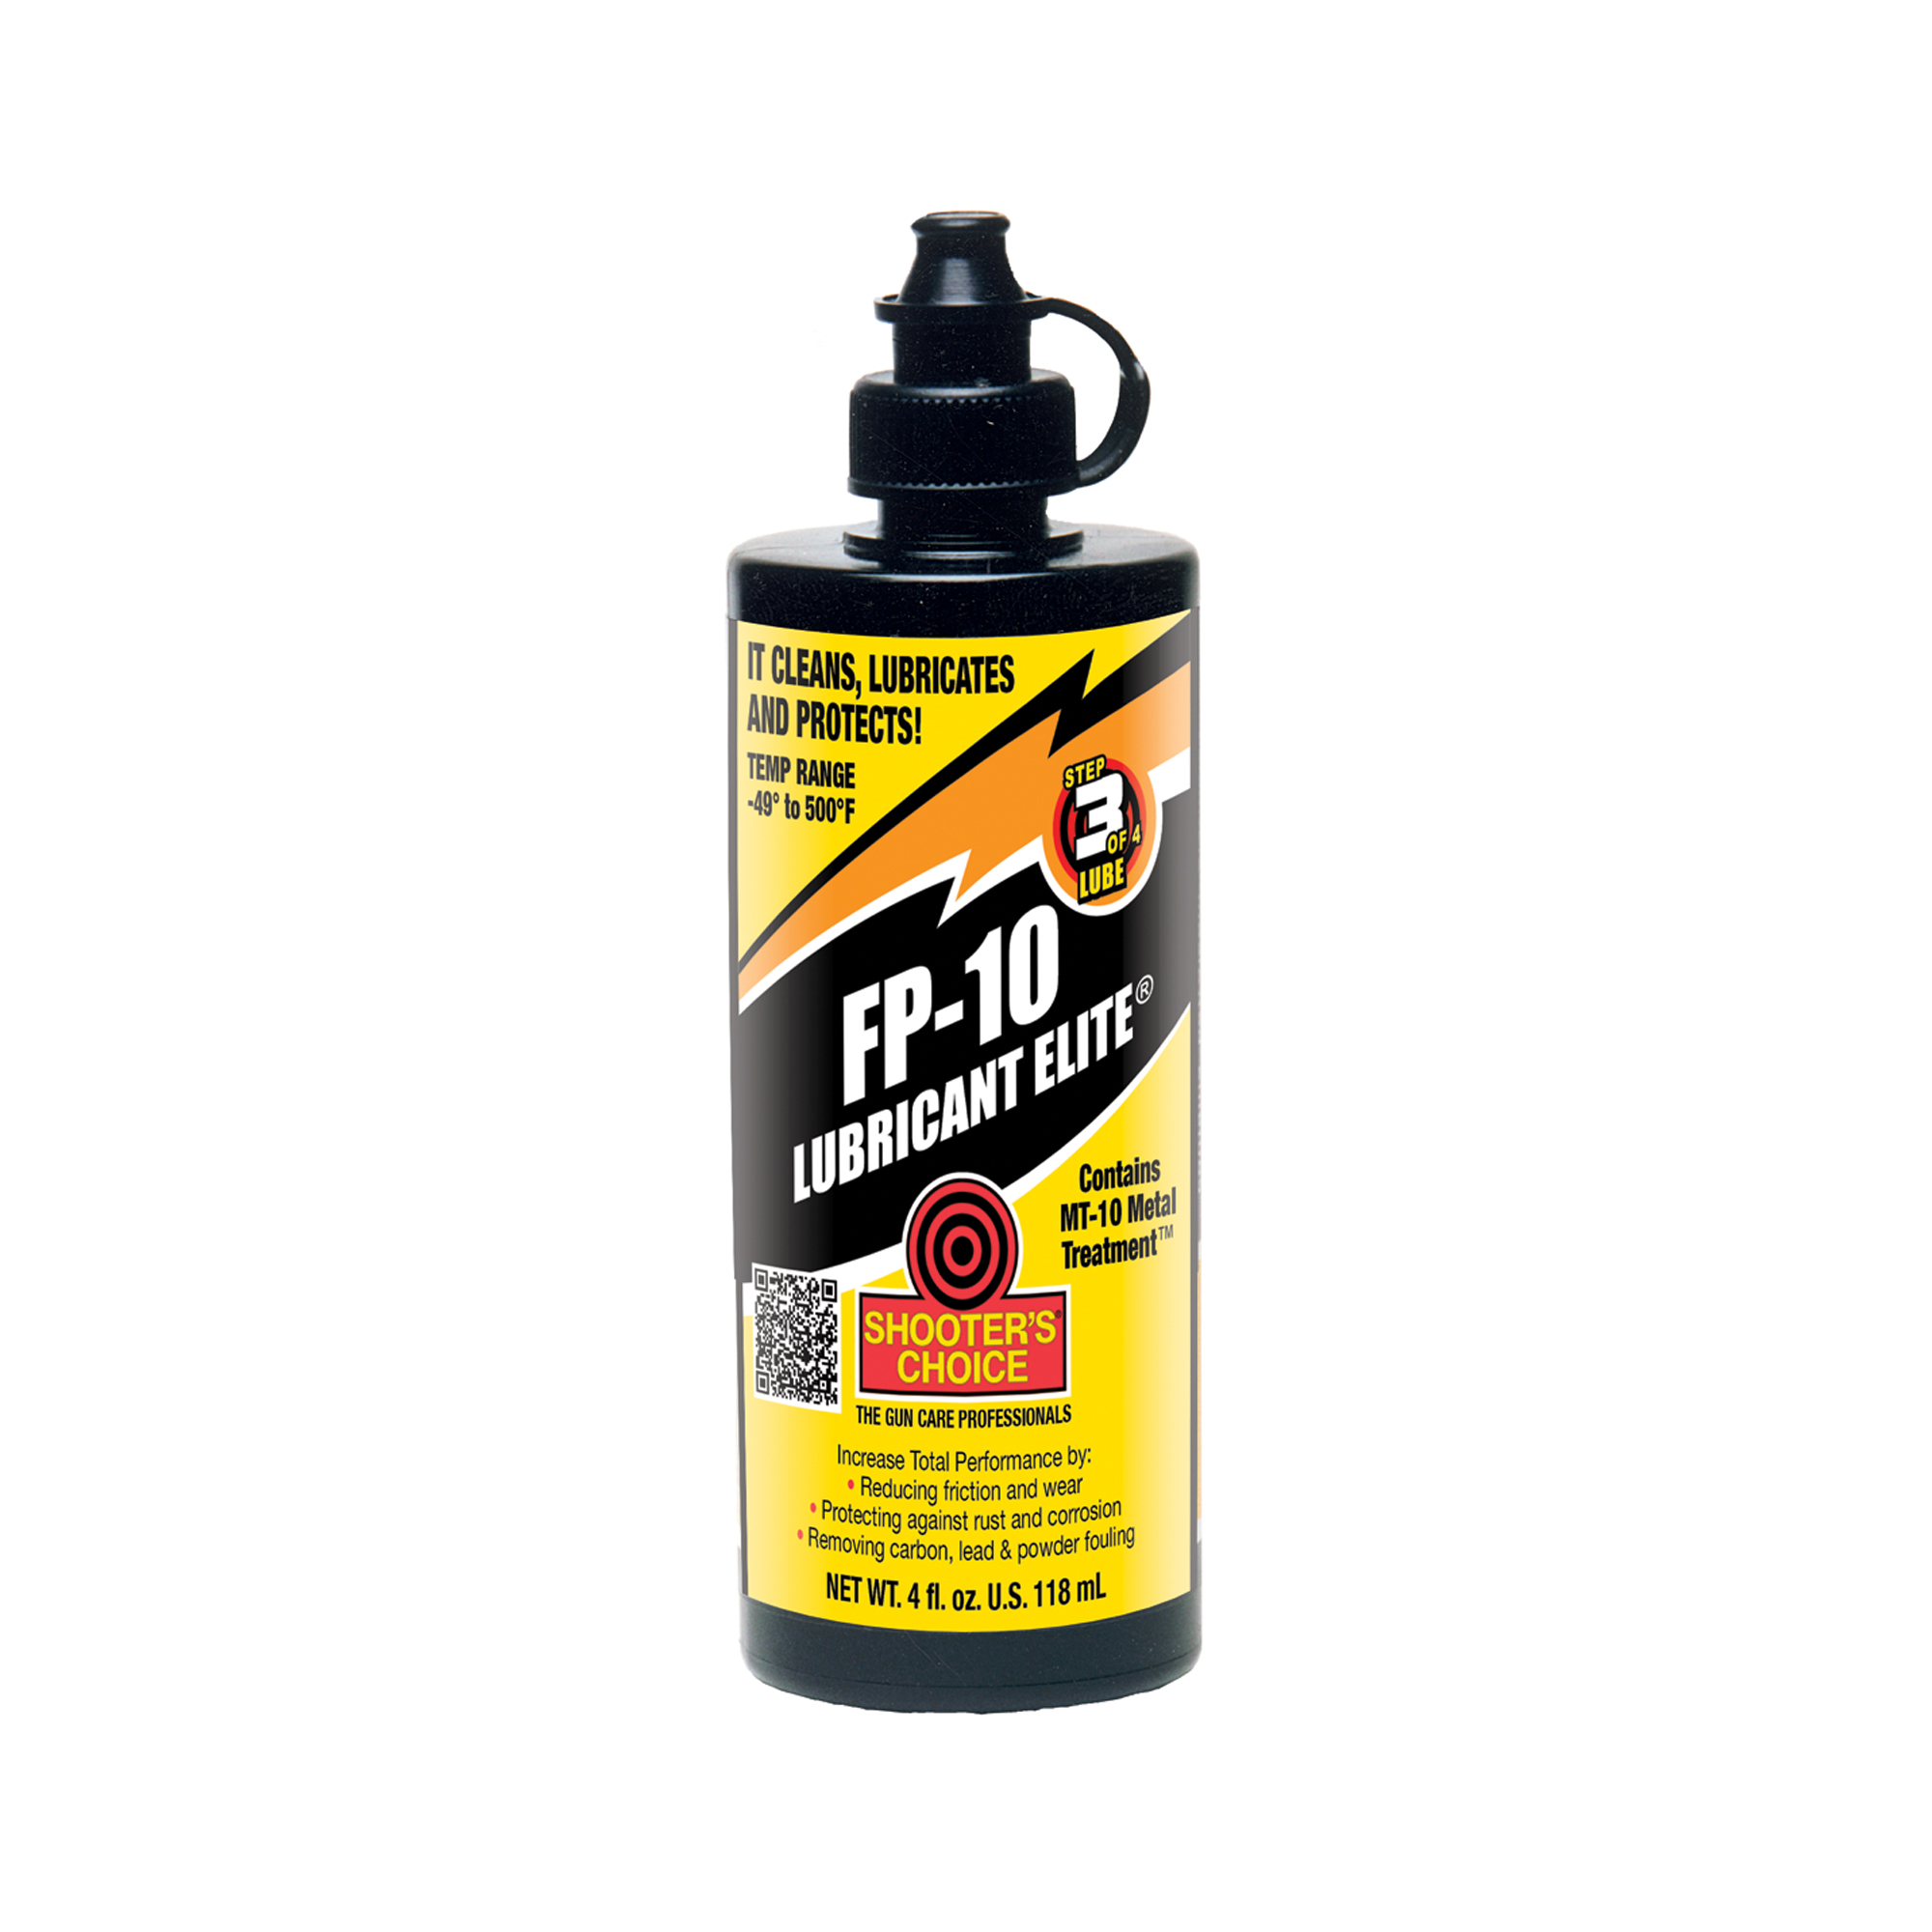 Shooter's Choice FP-10 Lubricant Elite is designed and formulated for the professional armorer and competitive sportsman for use in today's technically advanced weaponry.